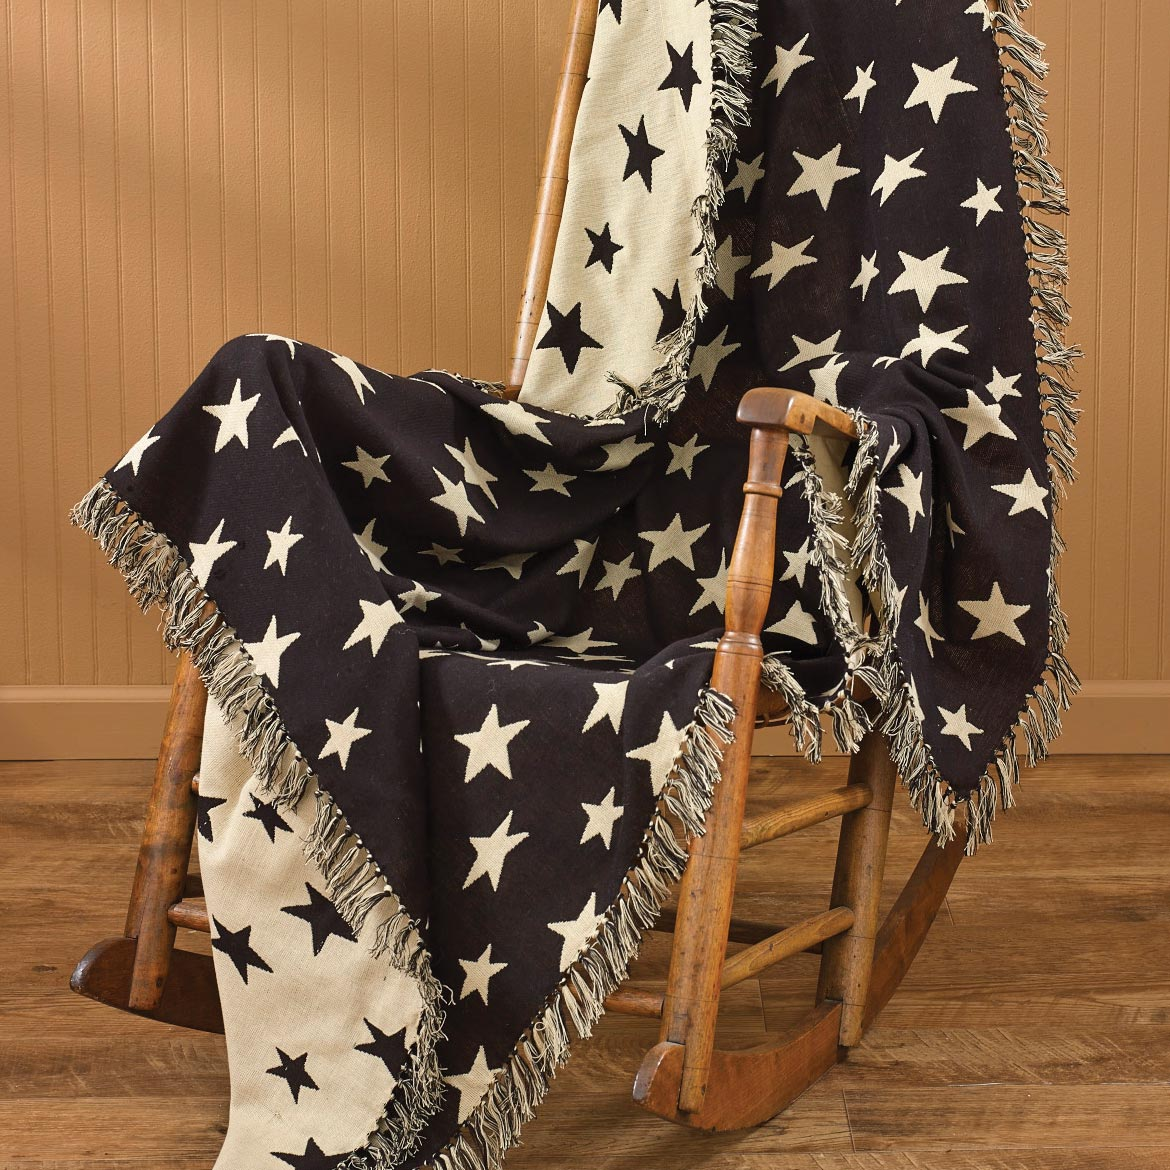 PKD-372-22-Stars-Jacquard-Throw-Blanket-1-LRG